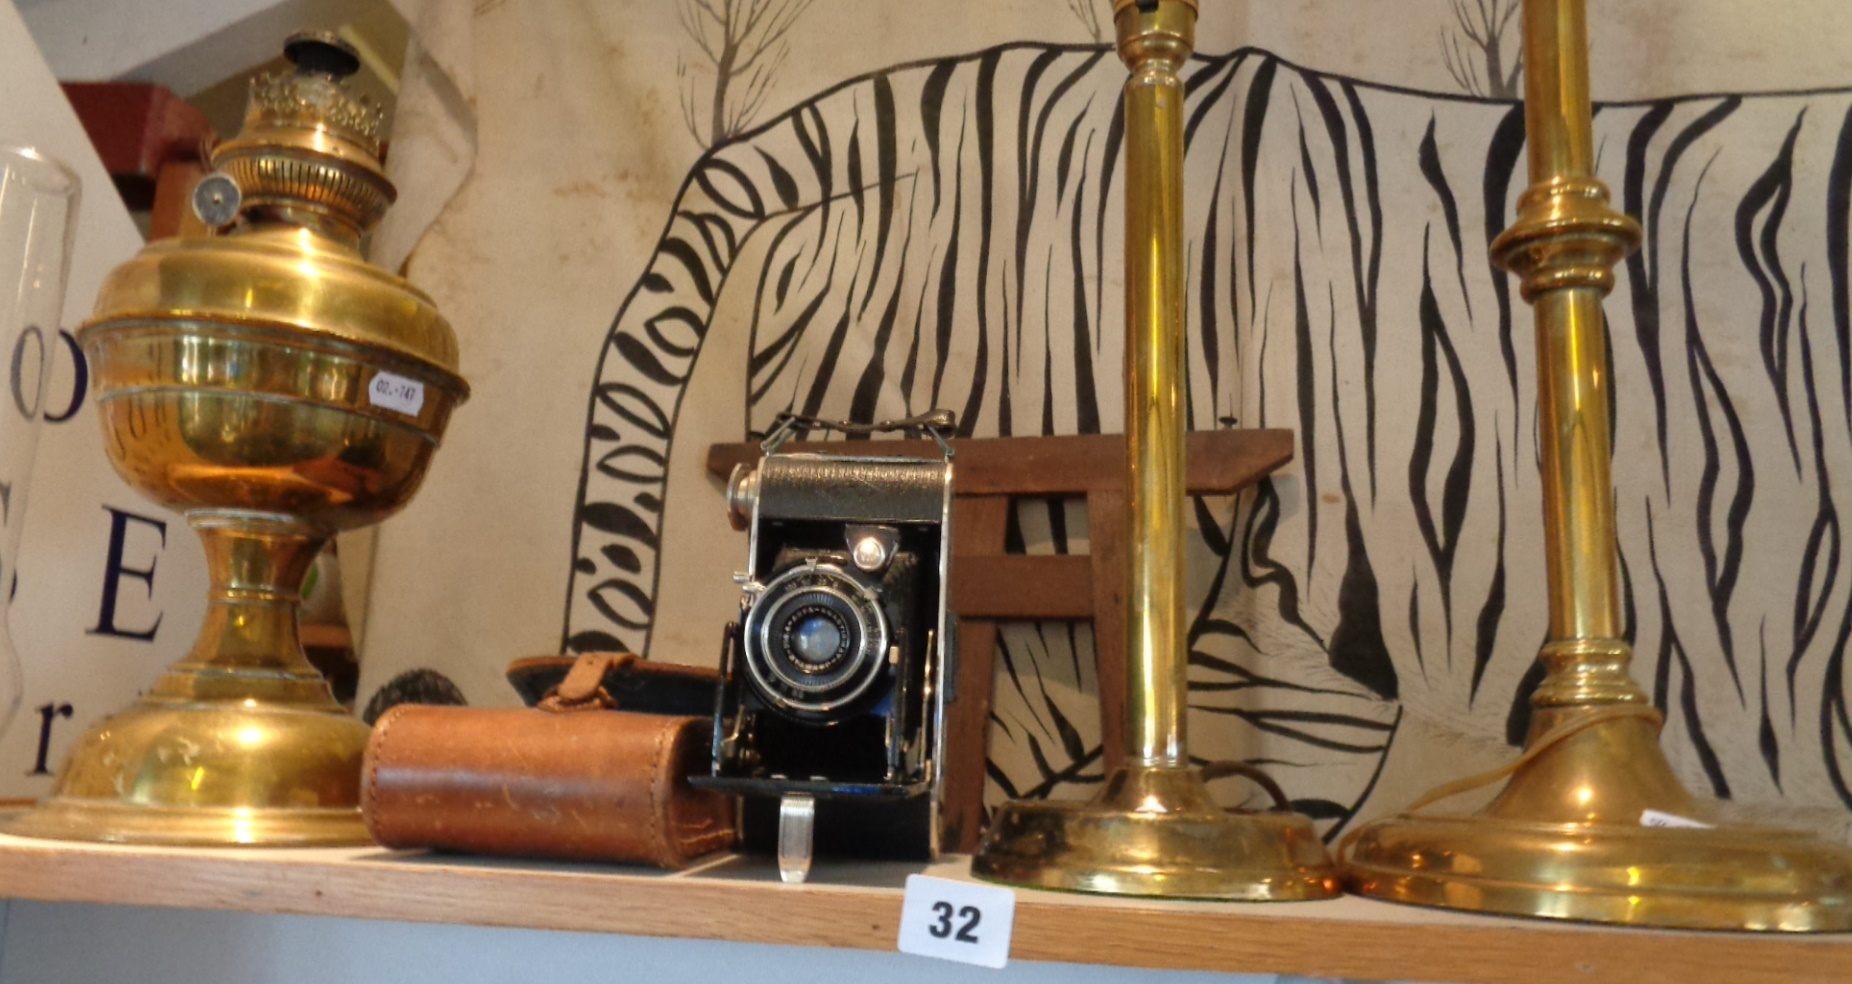 Lot 32 - Old Agfa bellows camera with leather case, brass table lamps, etc.